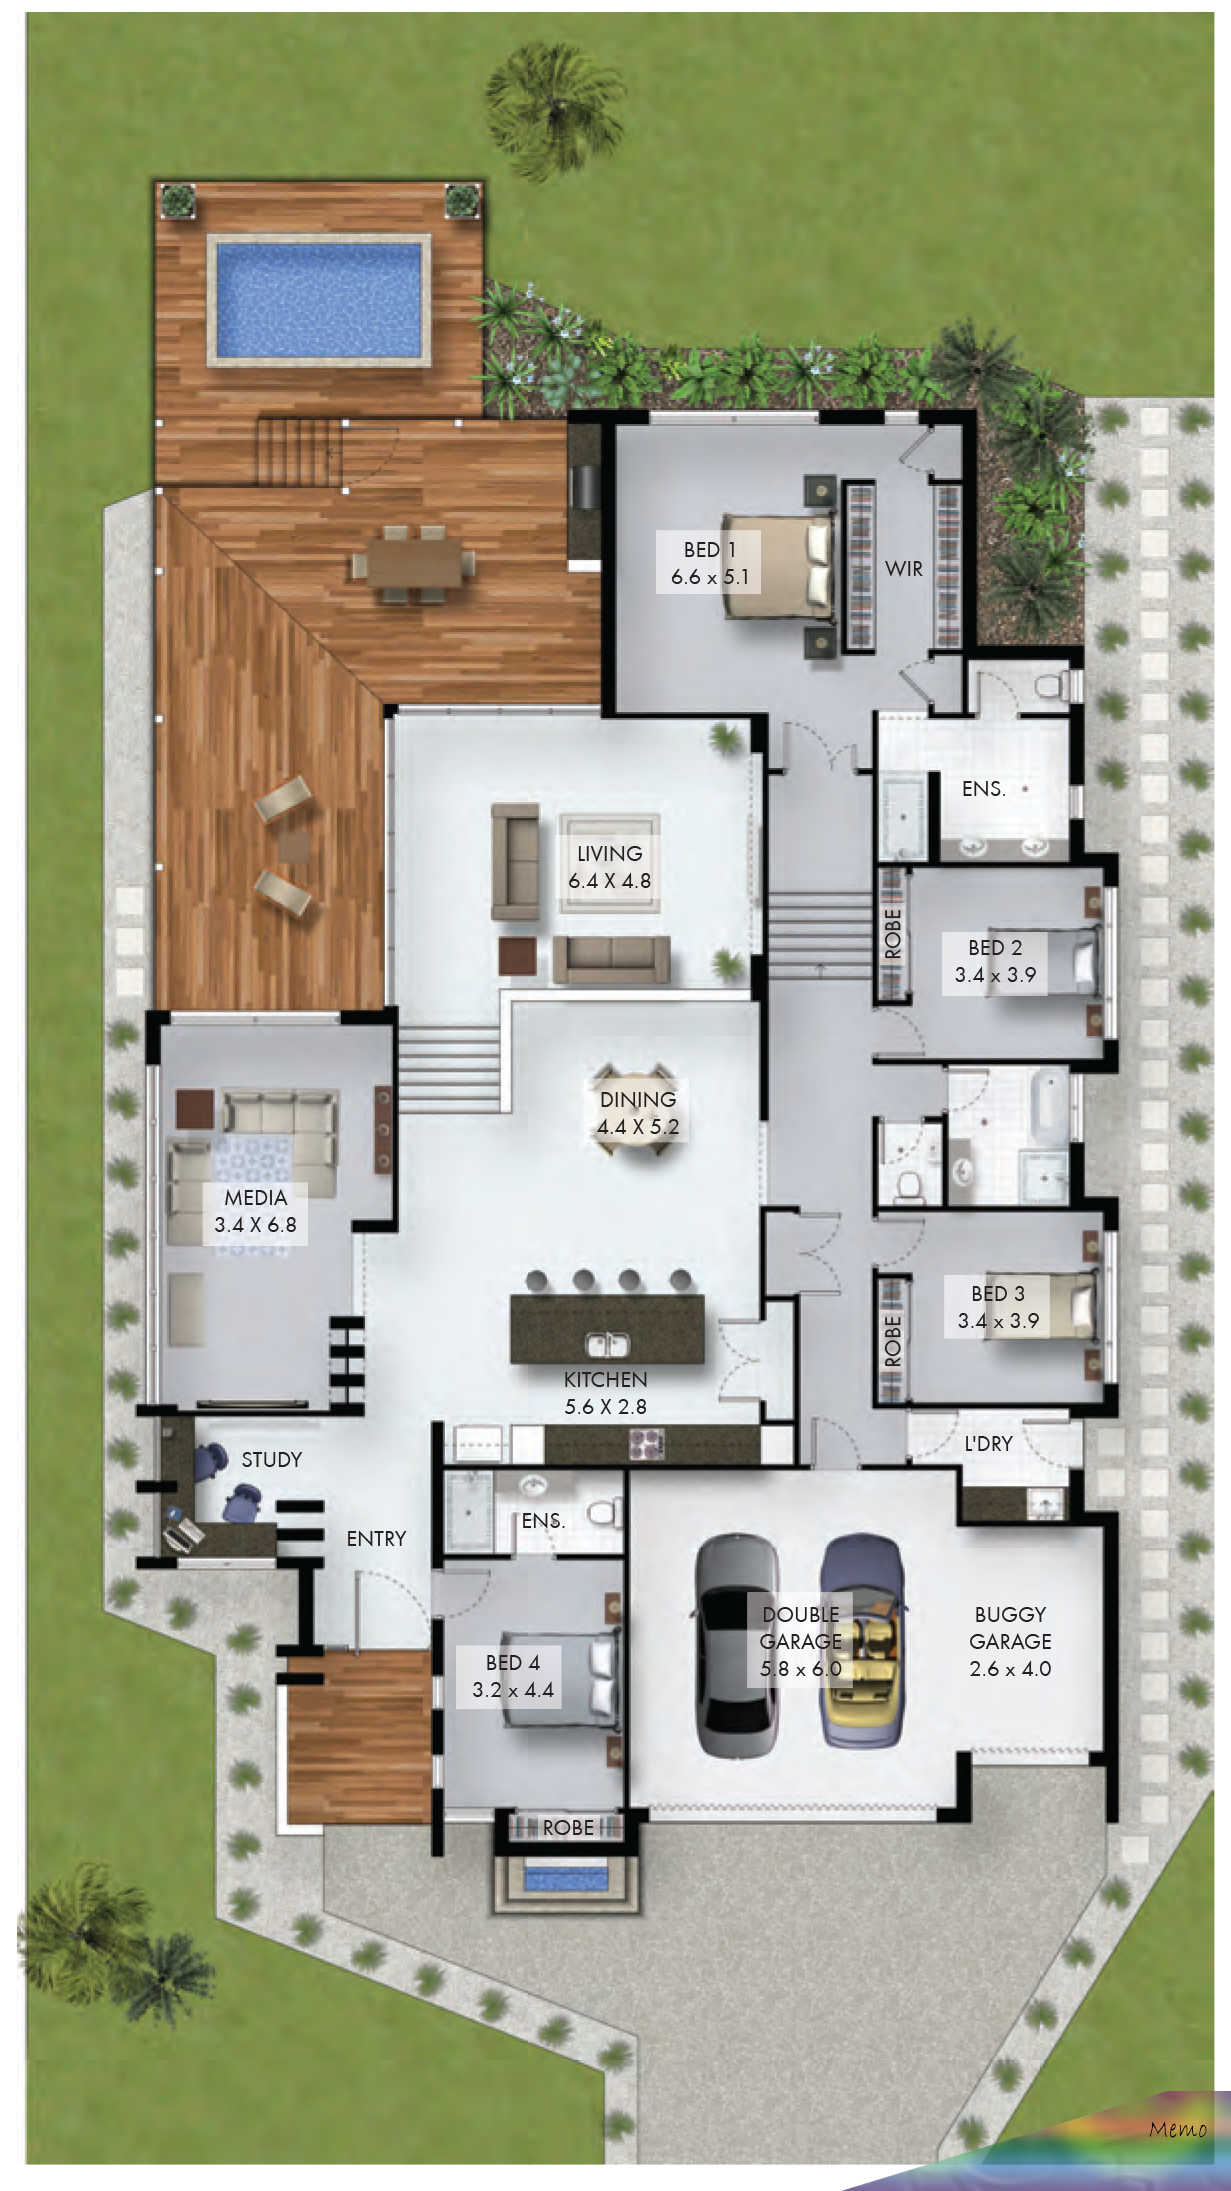 12 Abr 2017 Here S A Non Fancy 4 Bedroom Home With Study Nook And Triple Car Garage Which Would Fit On A Reas In 2020 Sims House Plans House Plans House Layout Plans